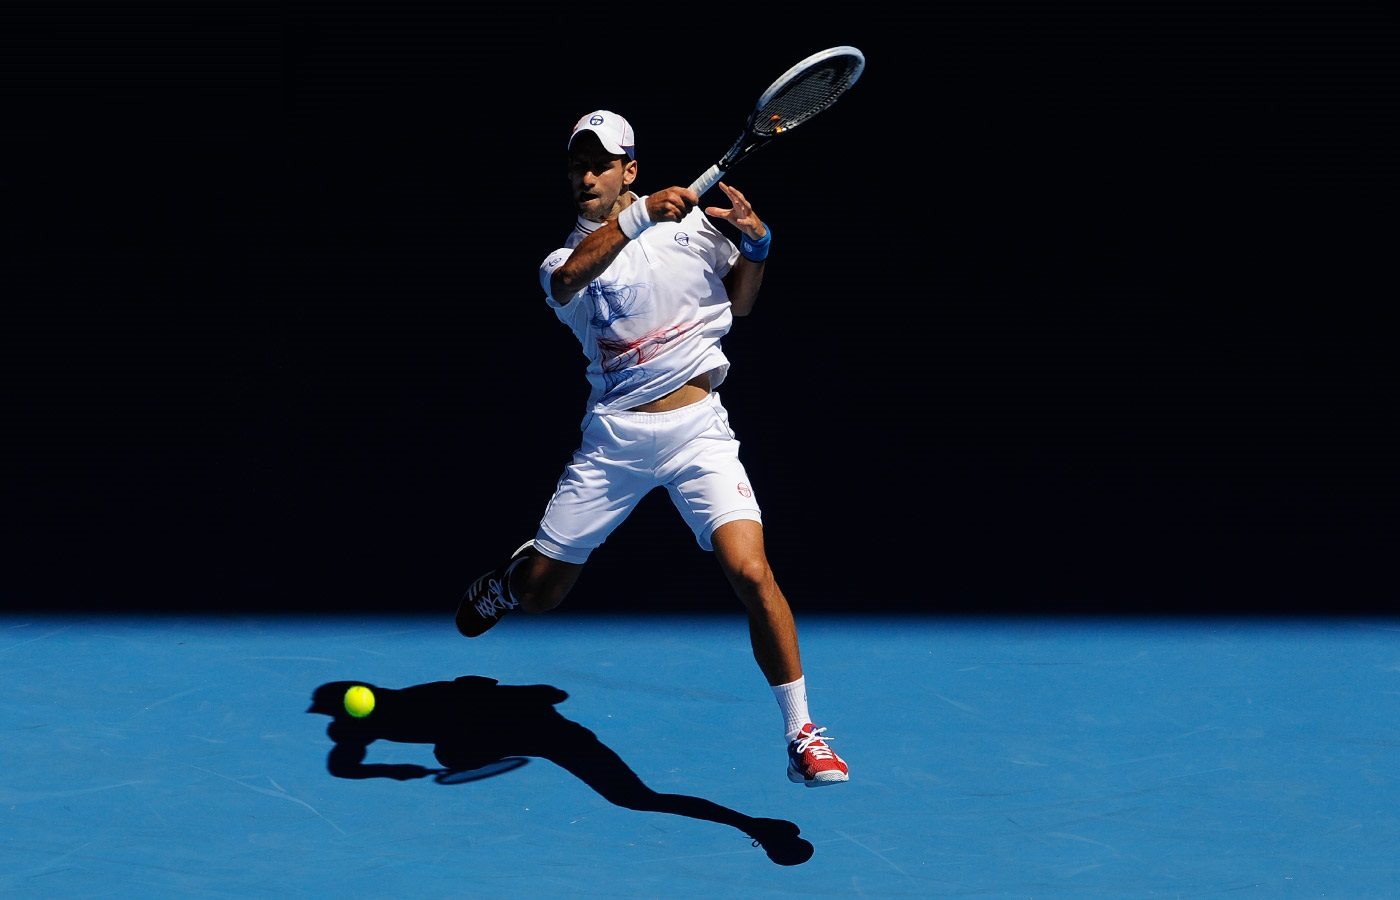 Get The Perfect Tennis Smash By Following These Drills - Playo